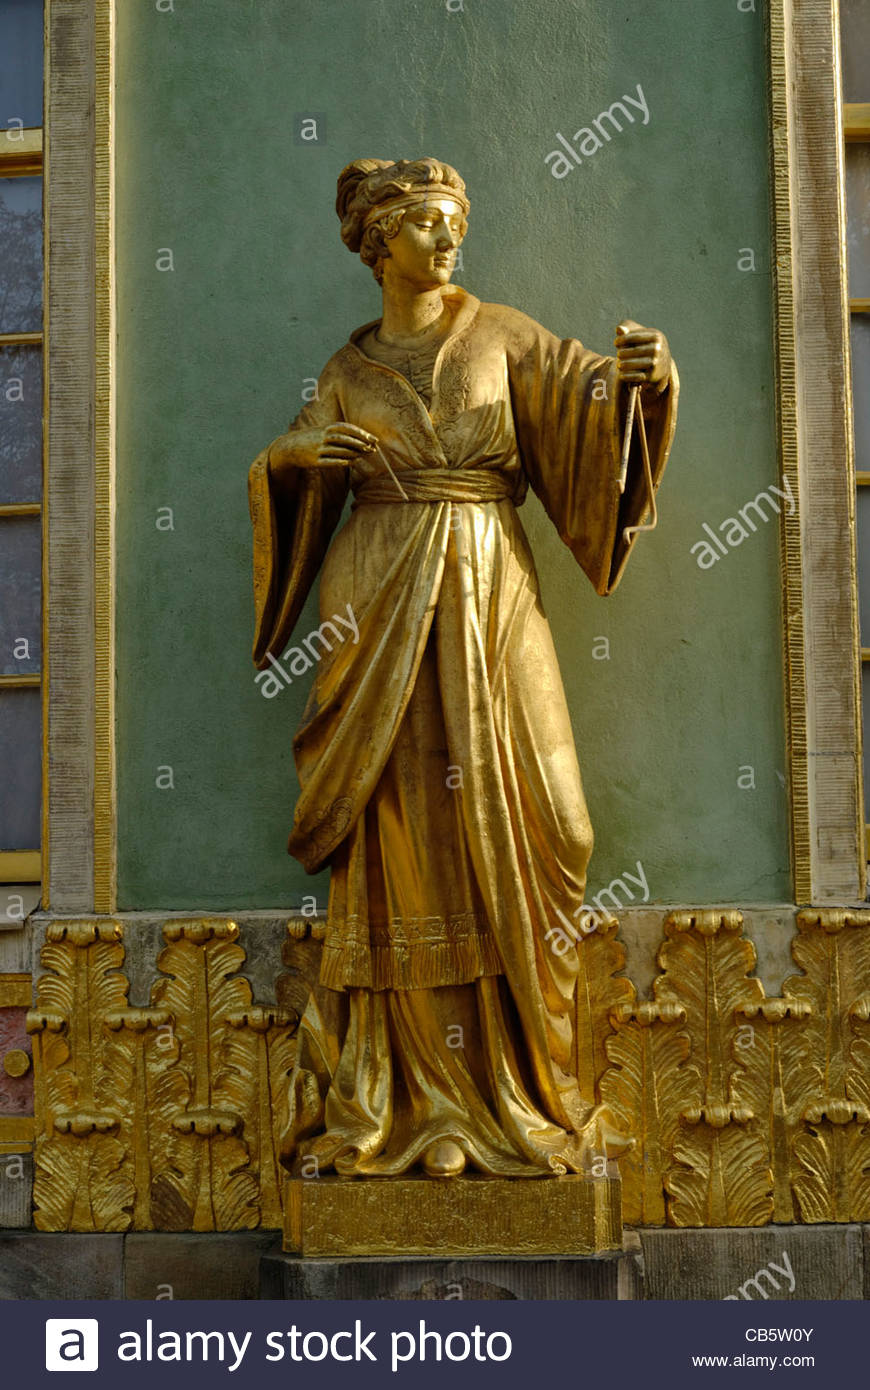 golden statue of a woman playing a triangle at The Chinese House, a garden pavilion in Sanssouci Park in Potsdam - Stock Image